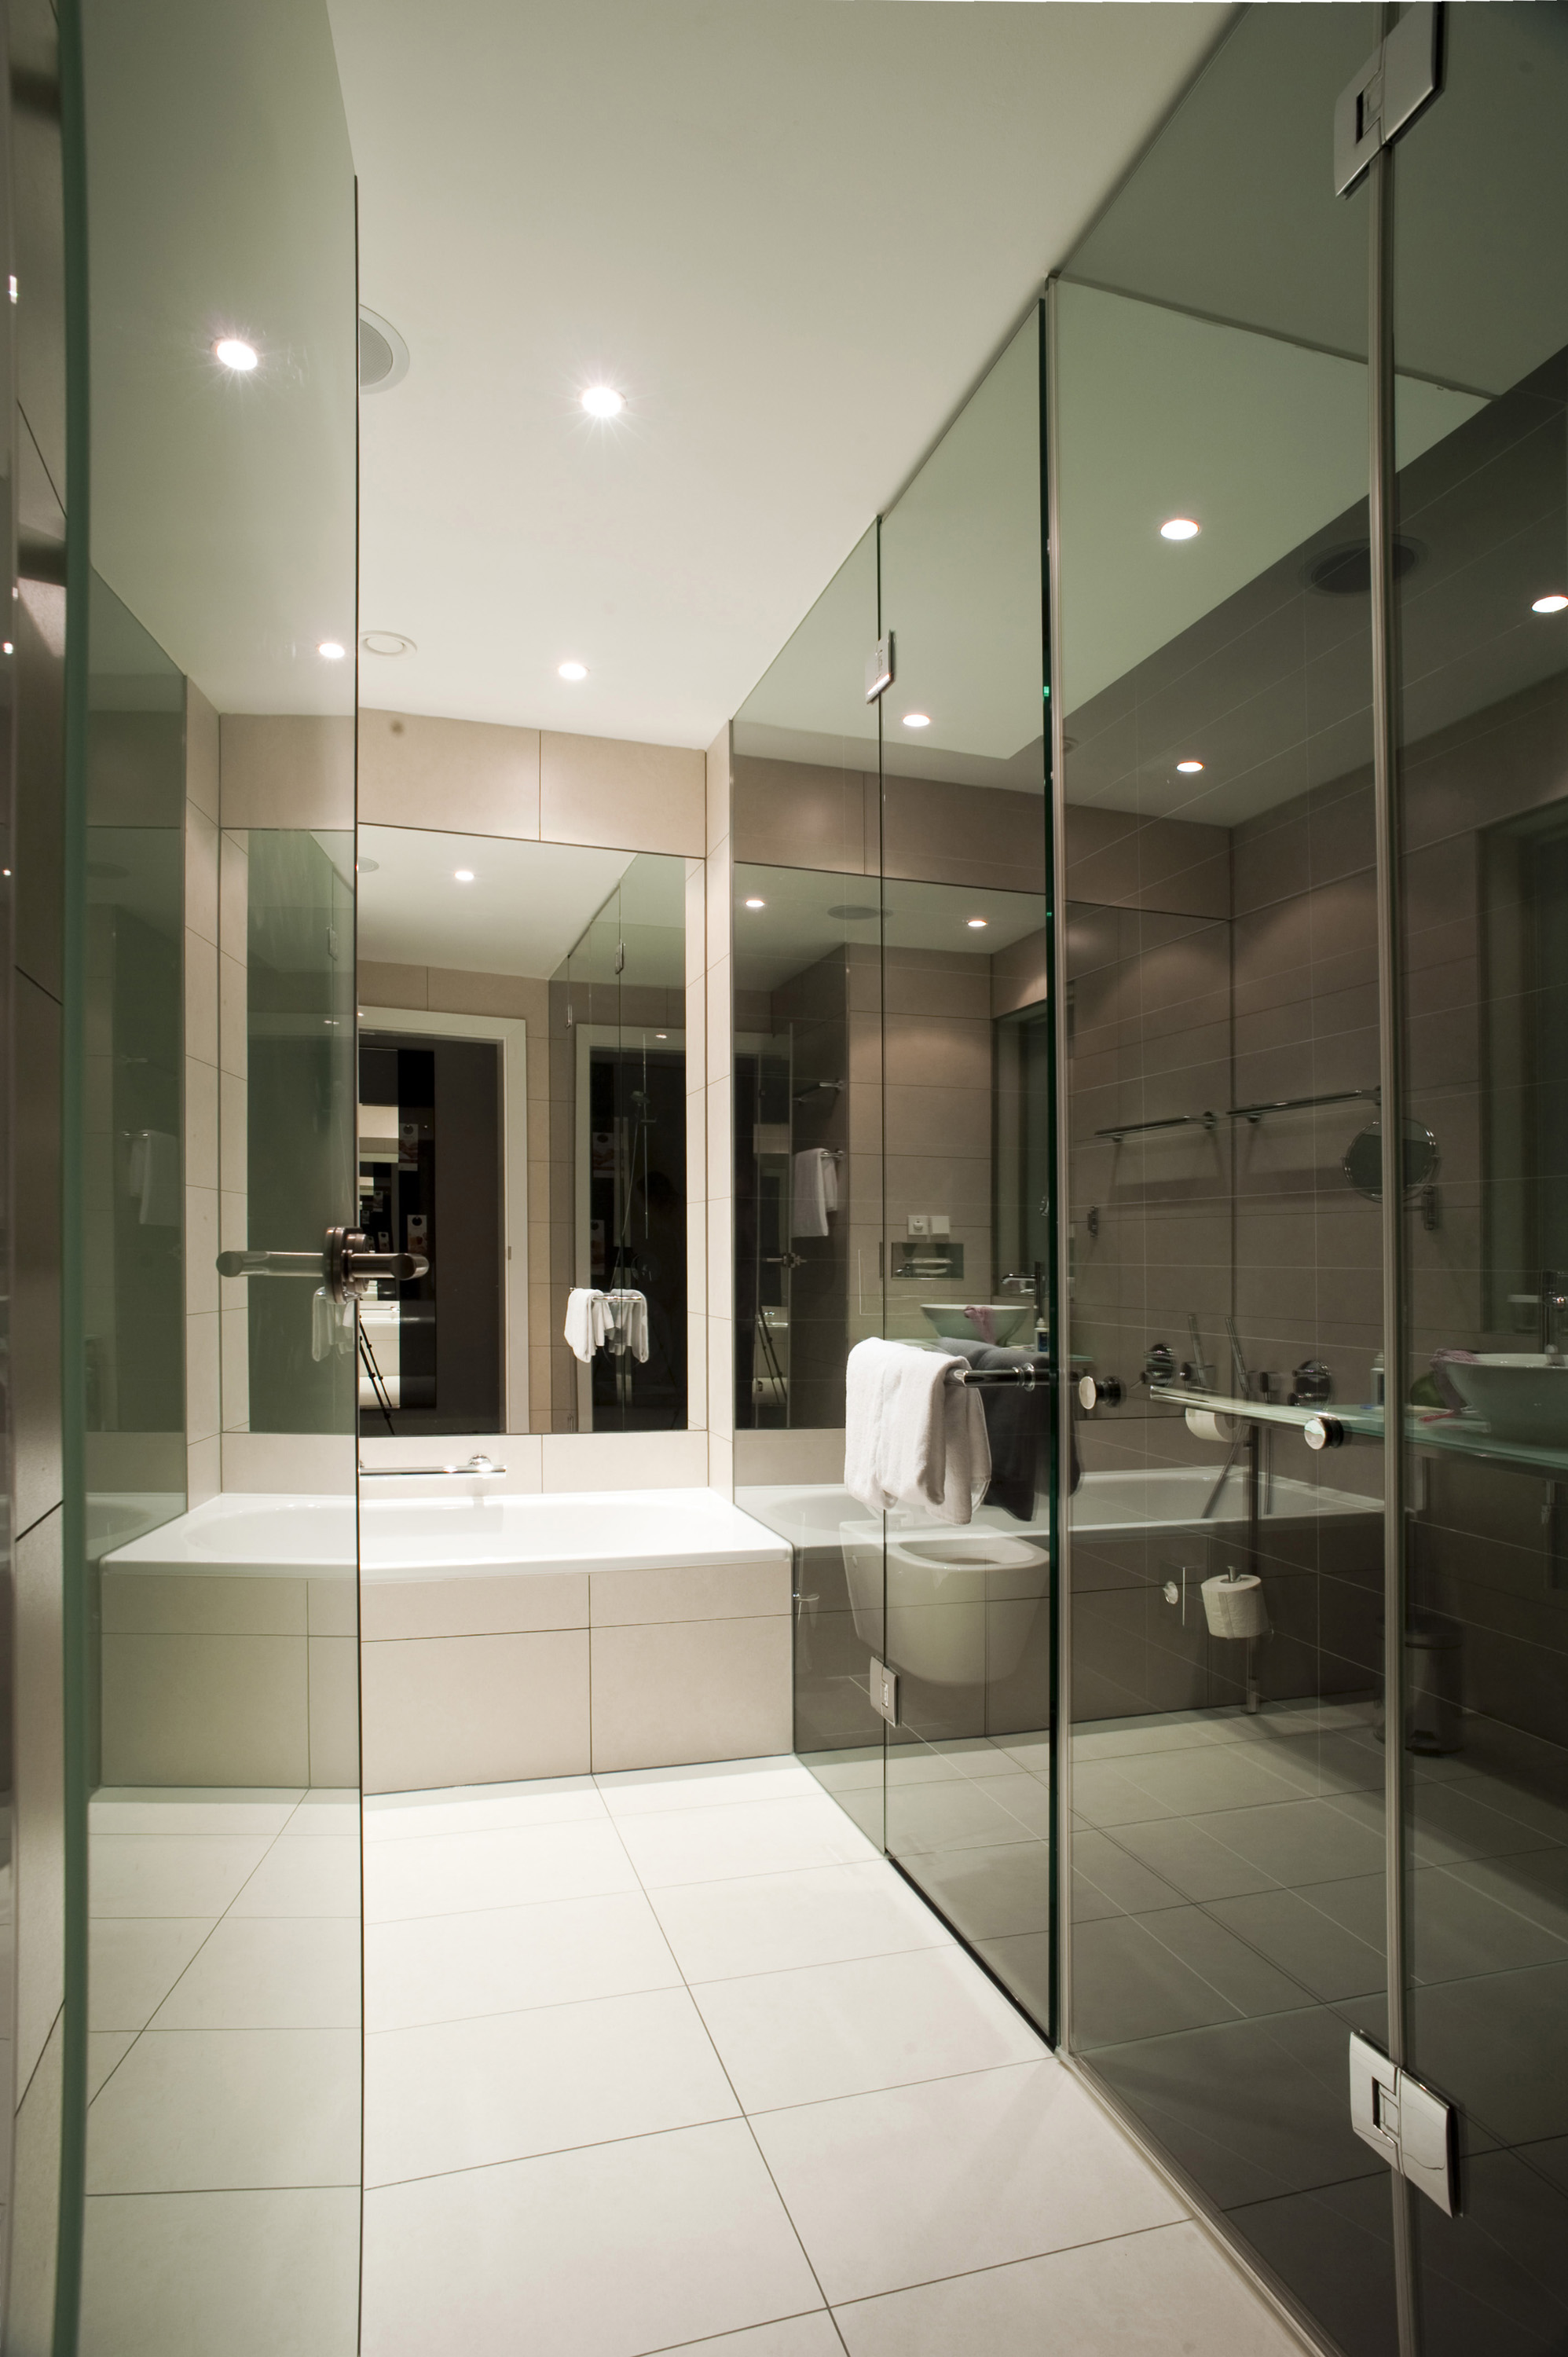 Modern hotel room bathroom images for Bathroom design galleries